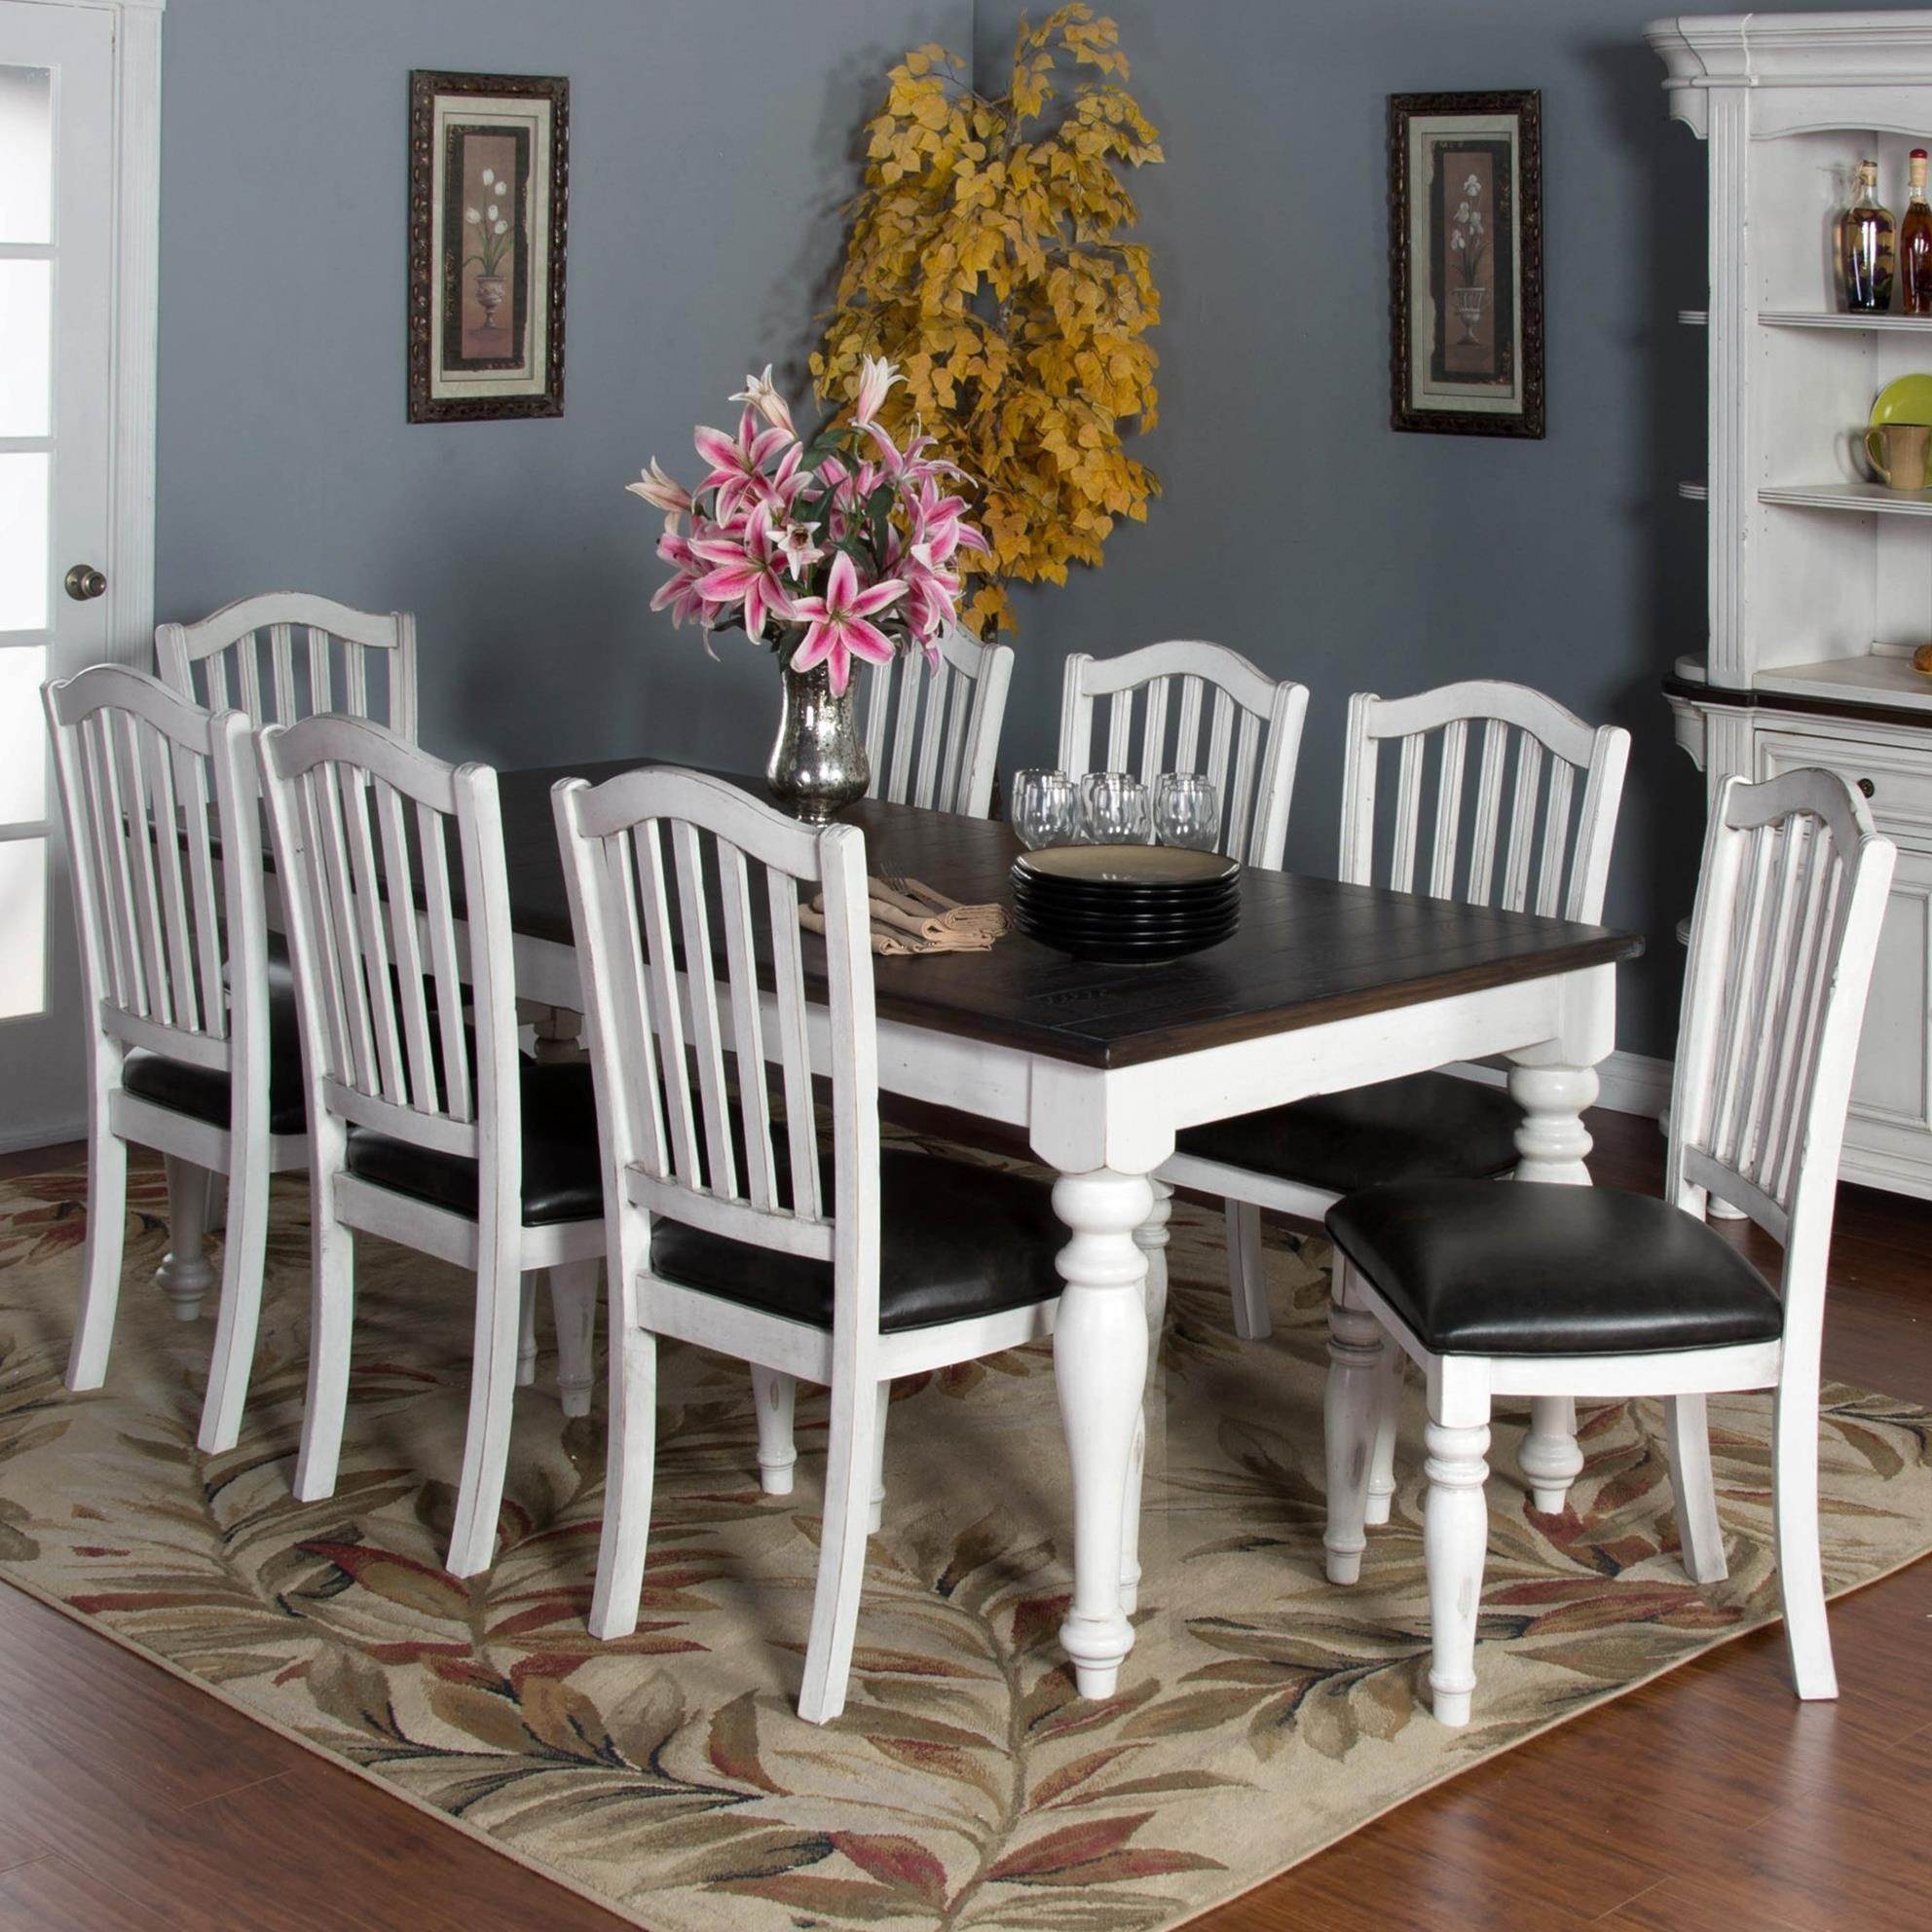 Sunny Designs Bourbon County9-Piece Extension Dining Table Set ...  sc 1 st  Furniture and ApplianceMart & Sunny Designs Bourbon County 9-Piece Extension Dining Table Set with ...